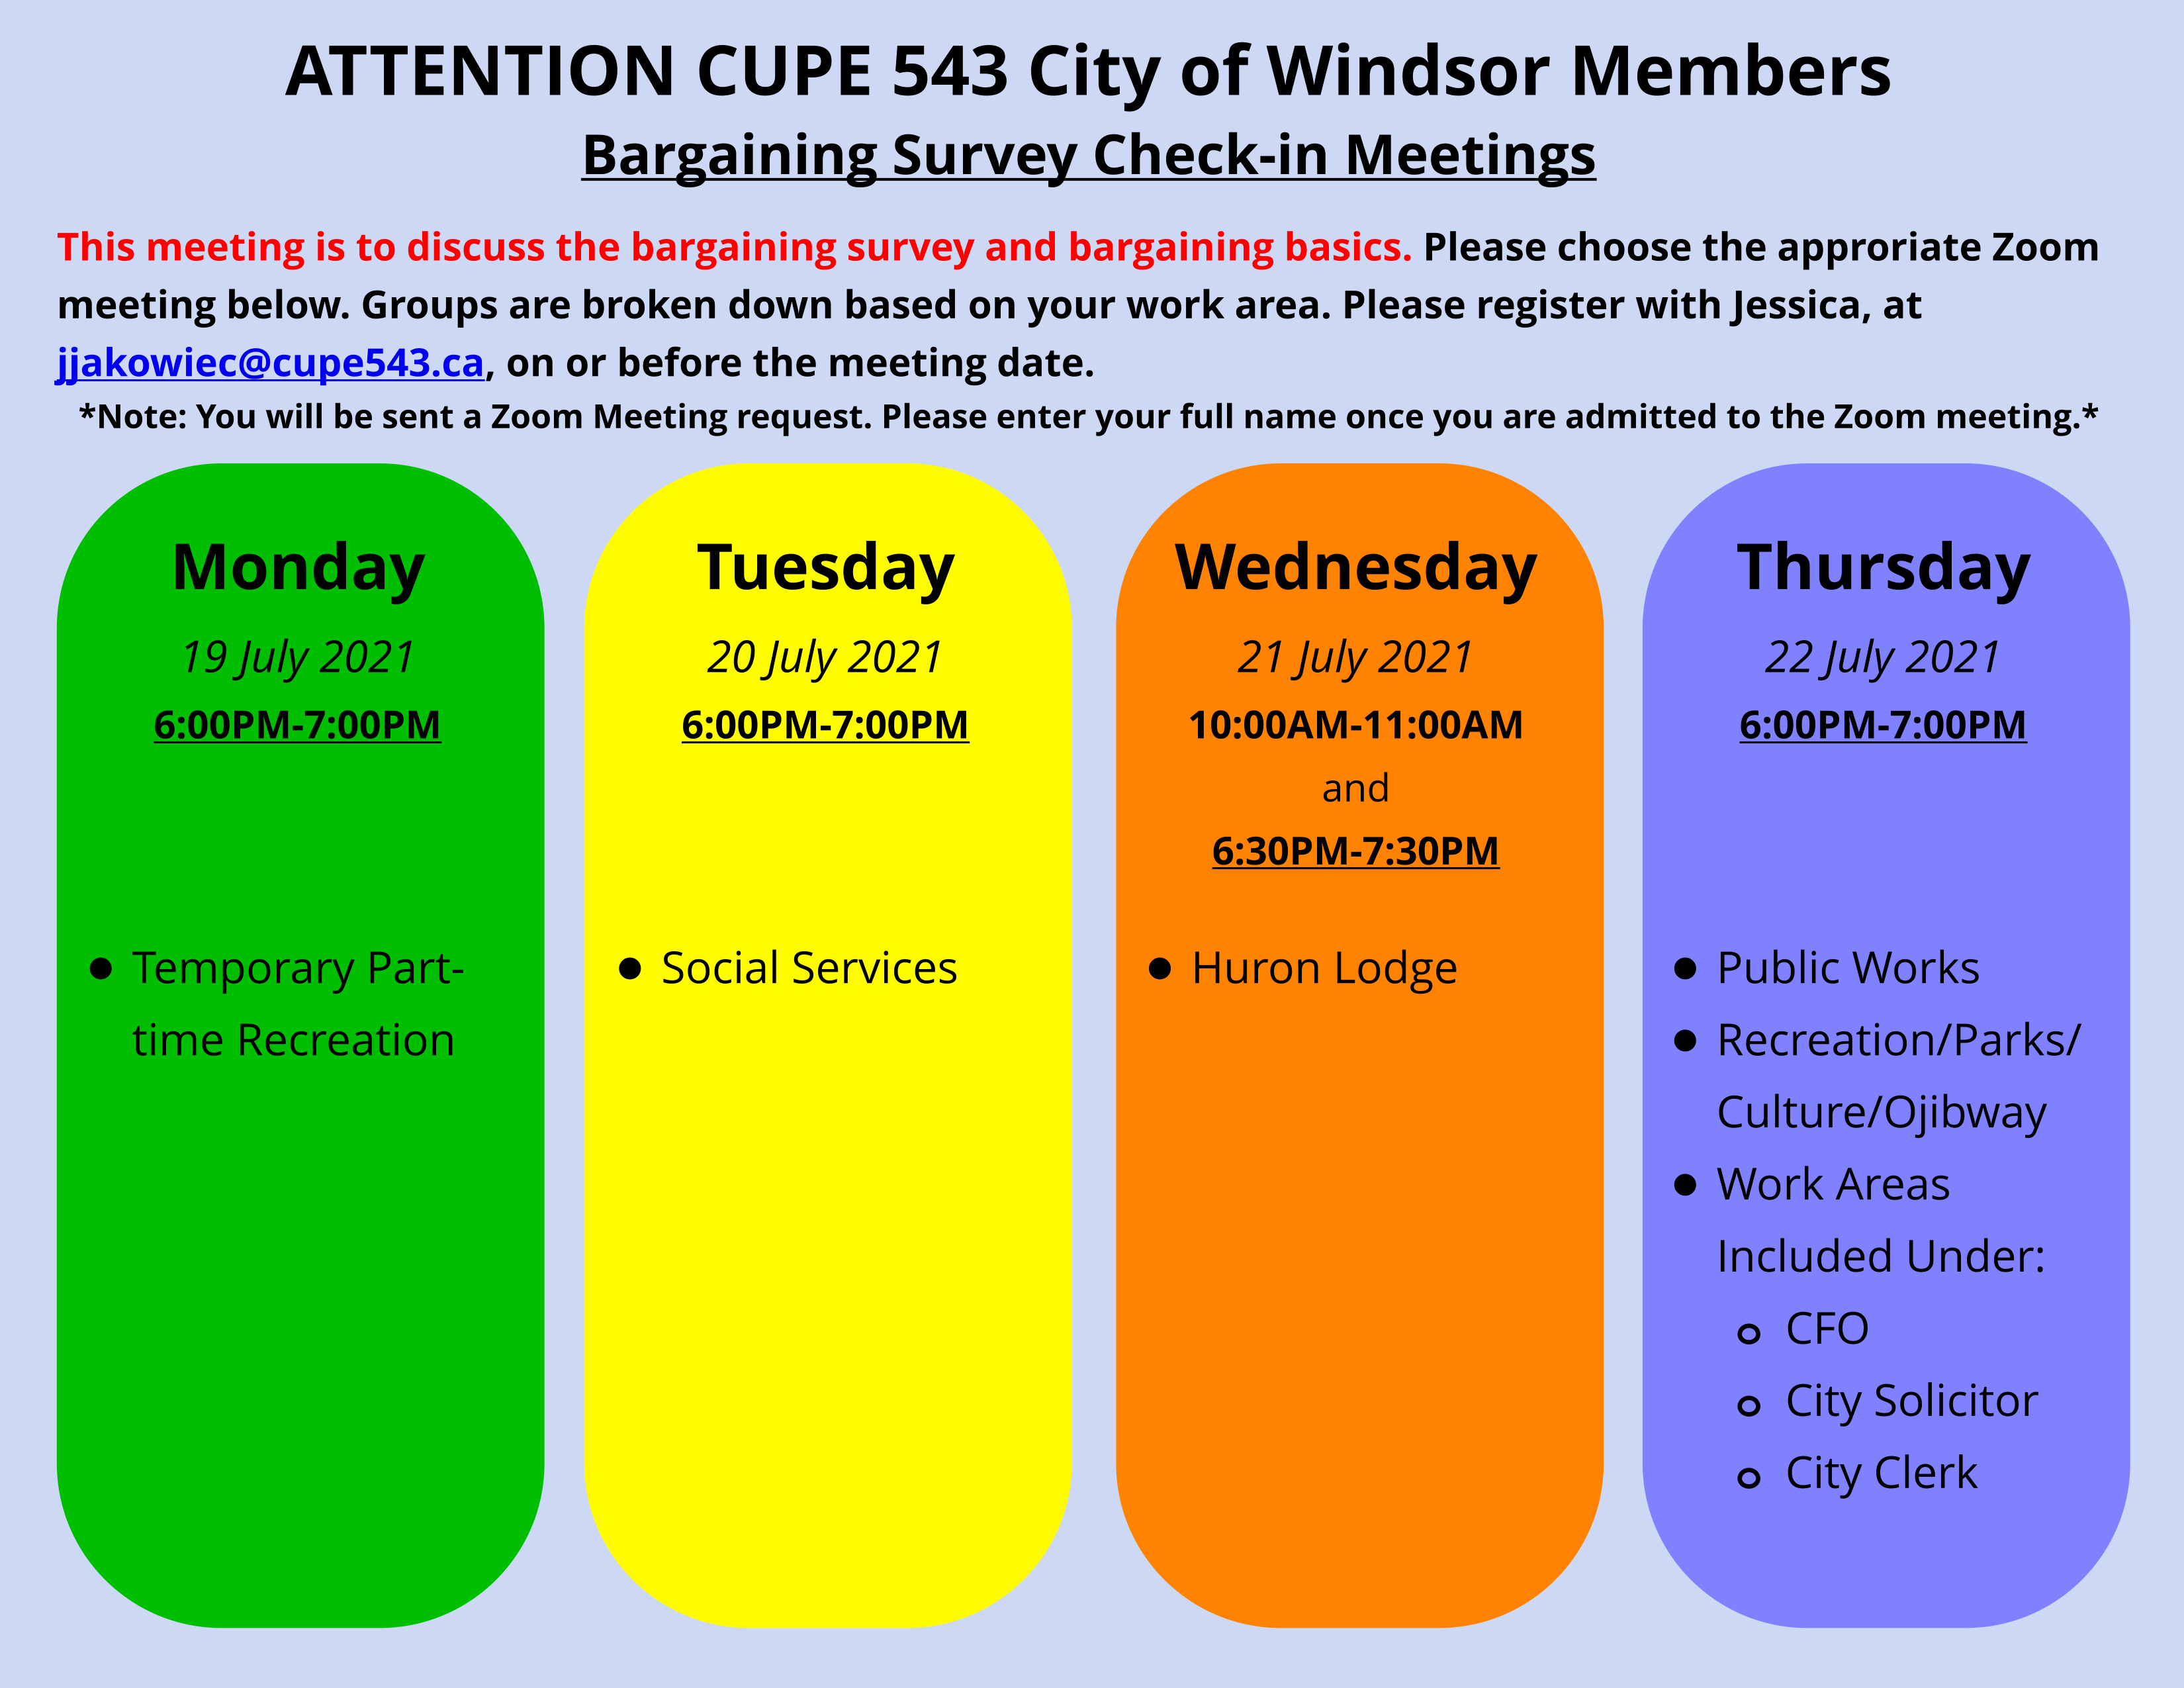 Bargaining Survey Check-in Meetings. Please Register to Attend by your Work Area @ Zoom